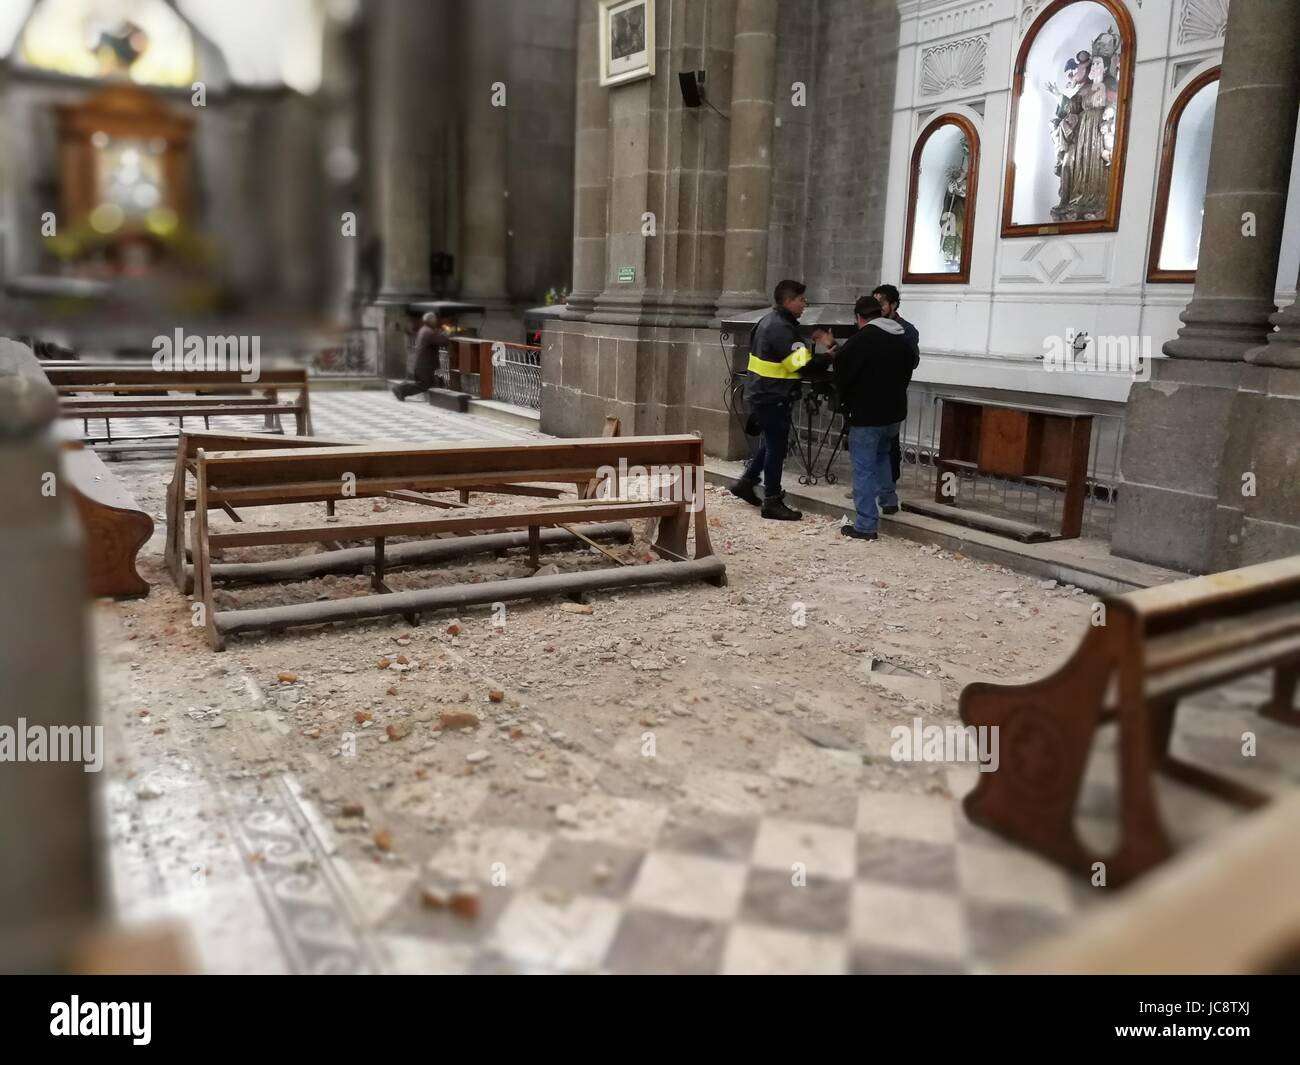 Quezaltenango, Guatemala. 14th June, 2017. Ruins lie on the floor of the by an earthquake damaged Dome in Quezaltenango, - Stock Image